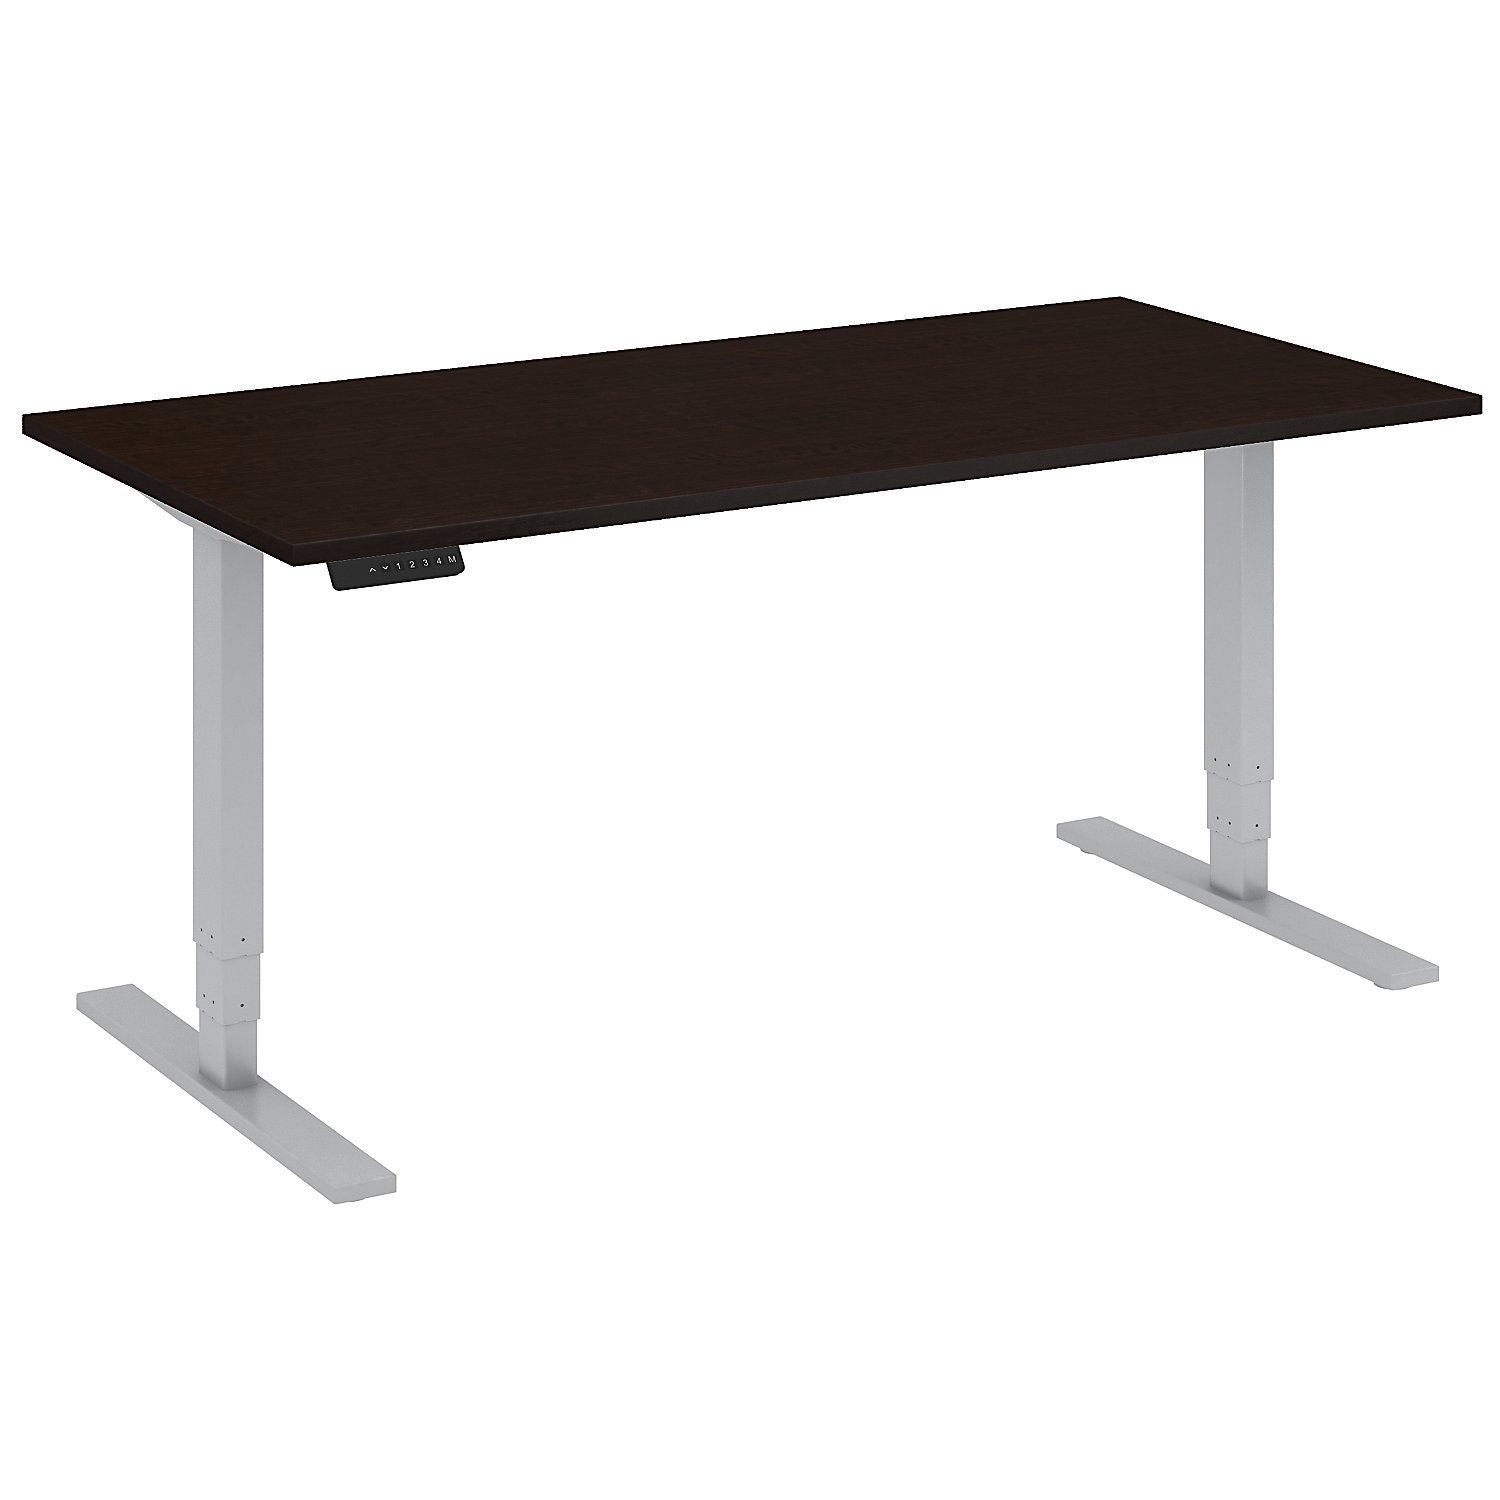 Ergonomic Standing Desk - Height Adjustable Table Sit Stand Desks